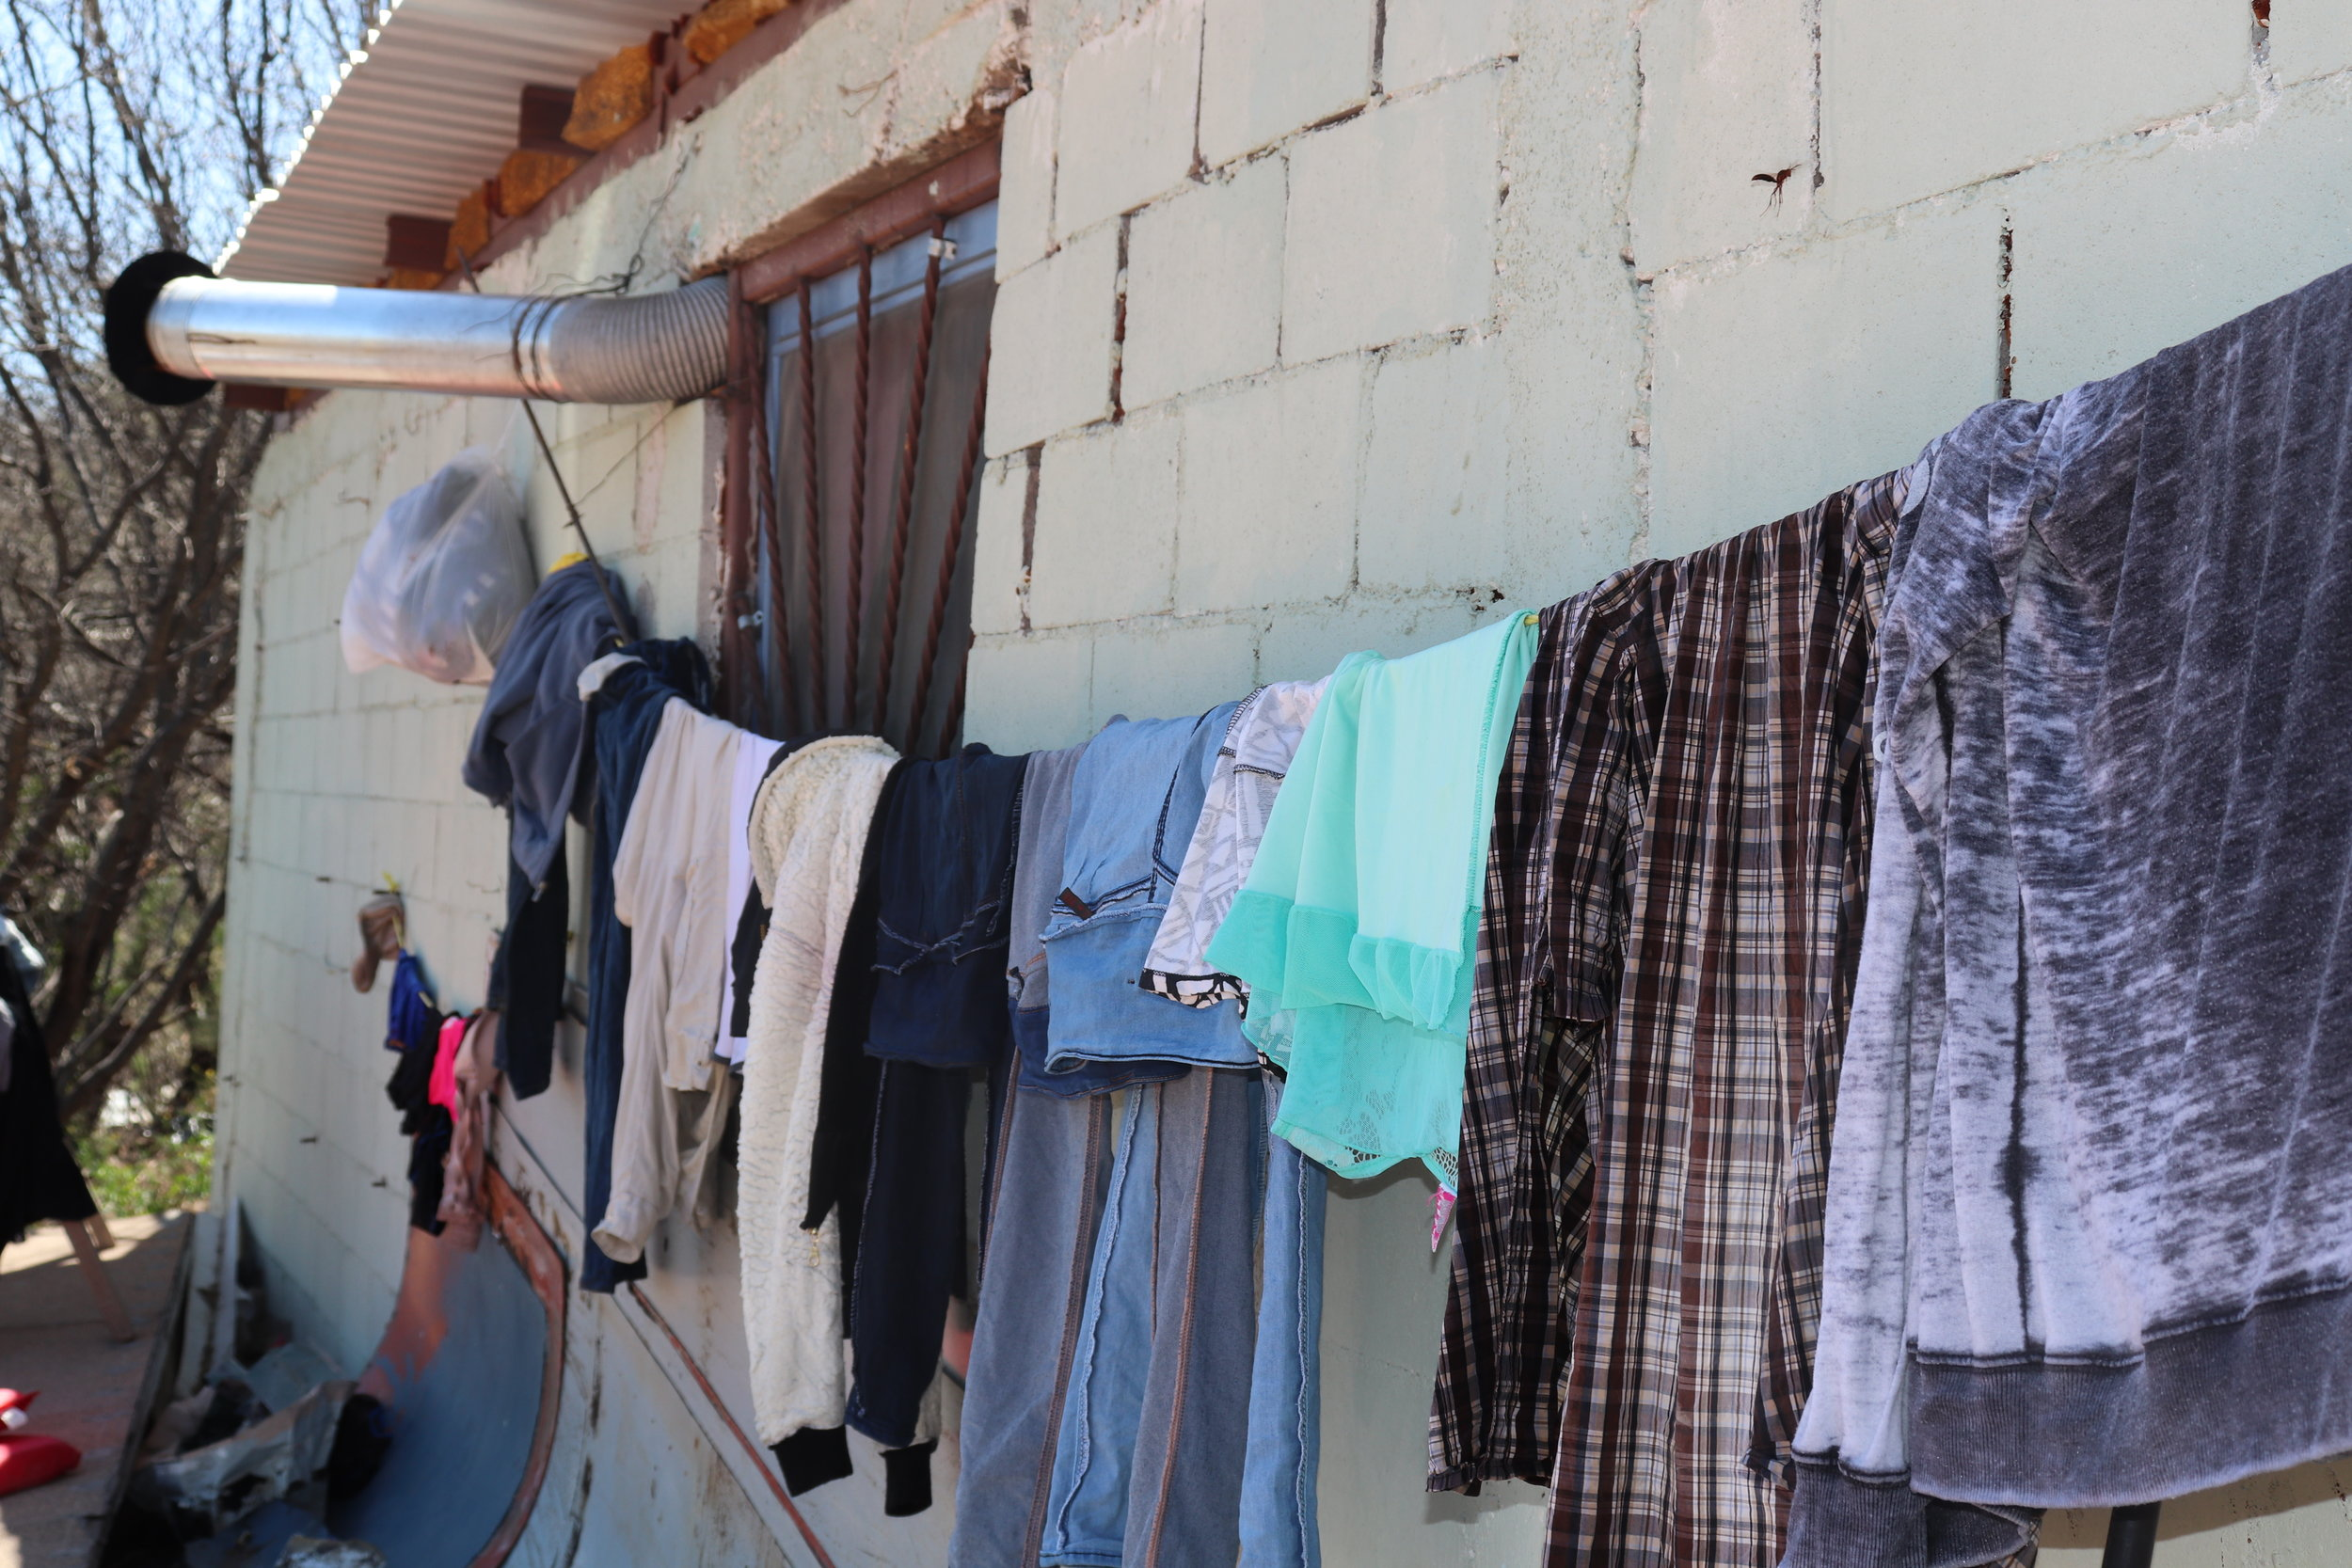 There are no washers or dryers at La Roca, so the migrants wash donated clothing in a sink and hang them to dry in the heat.